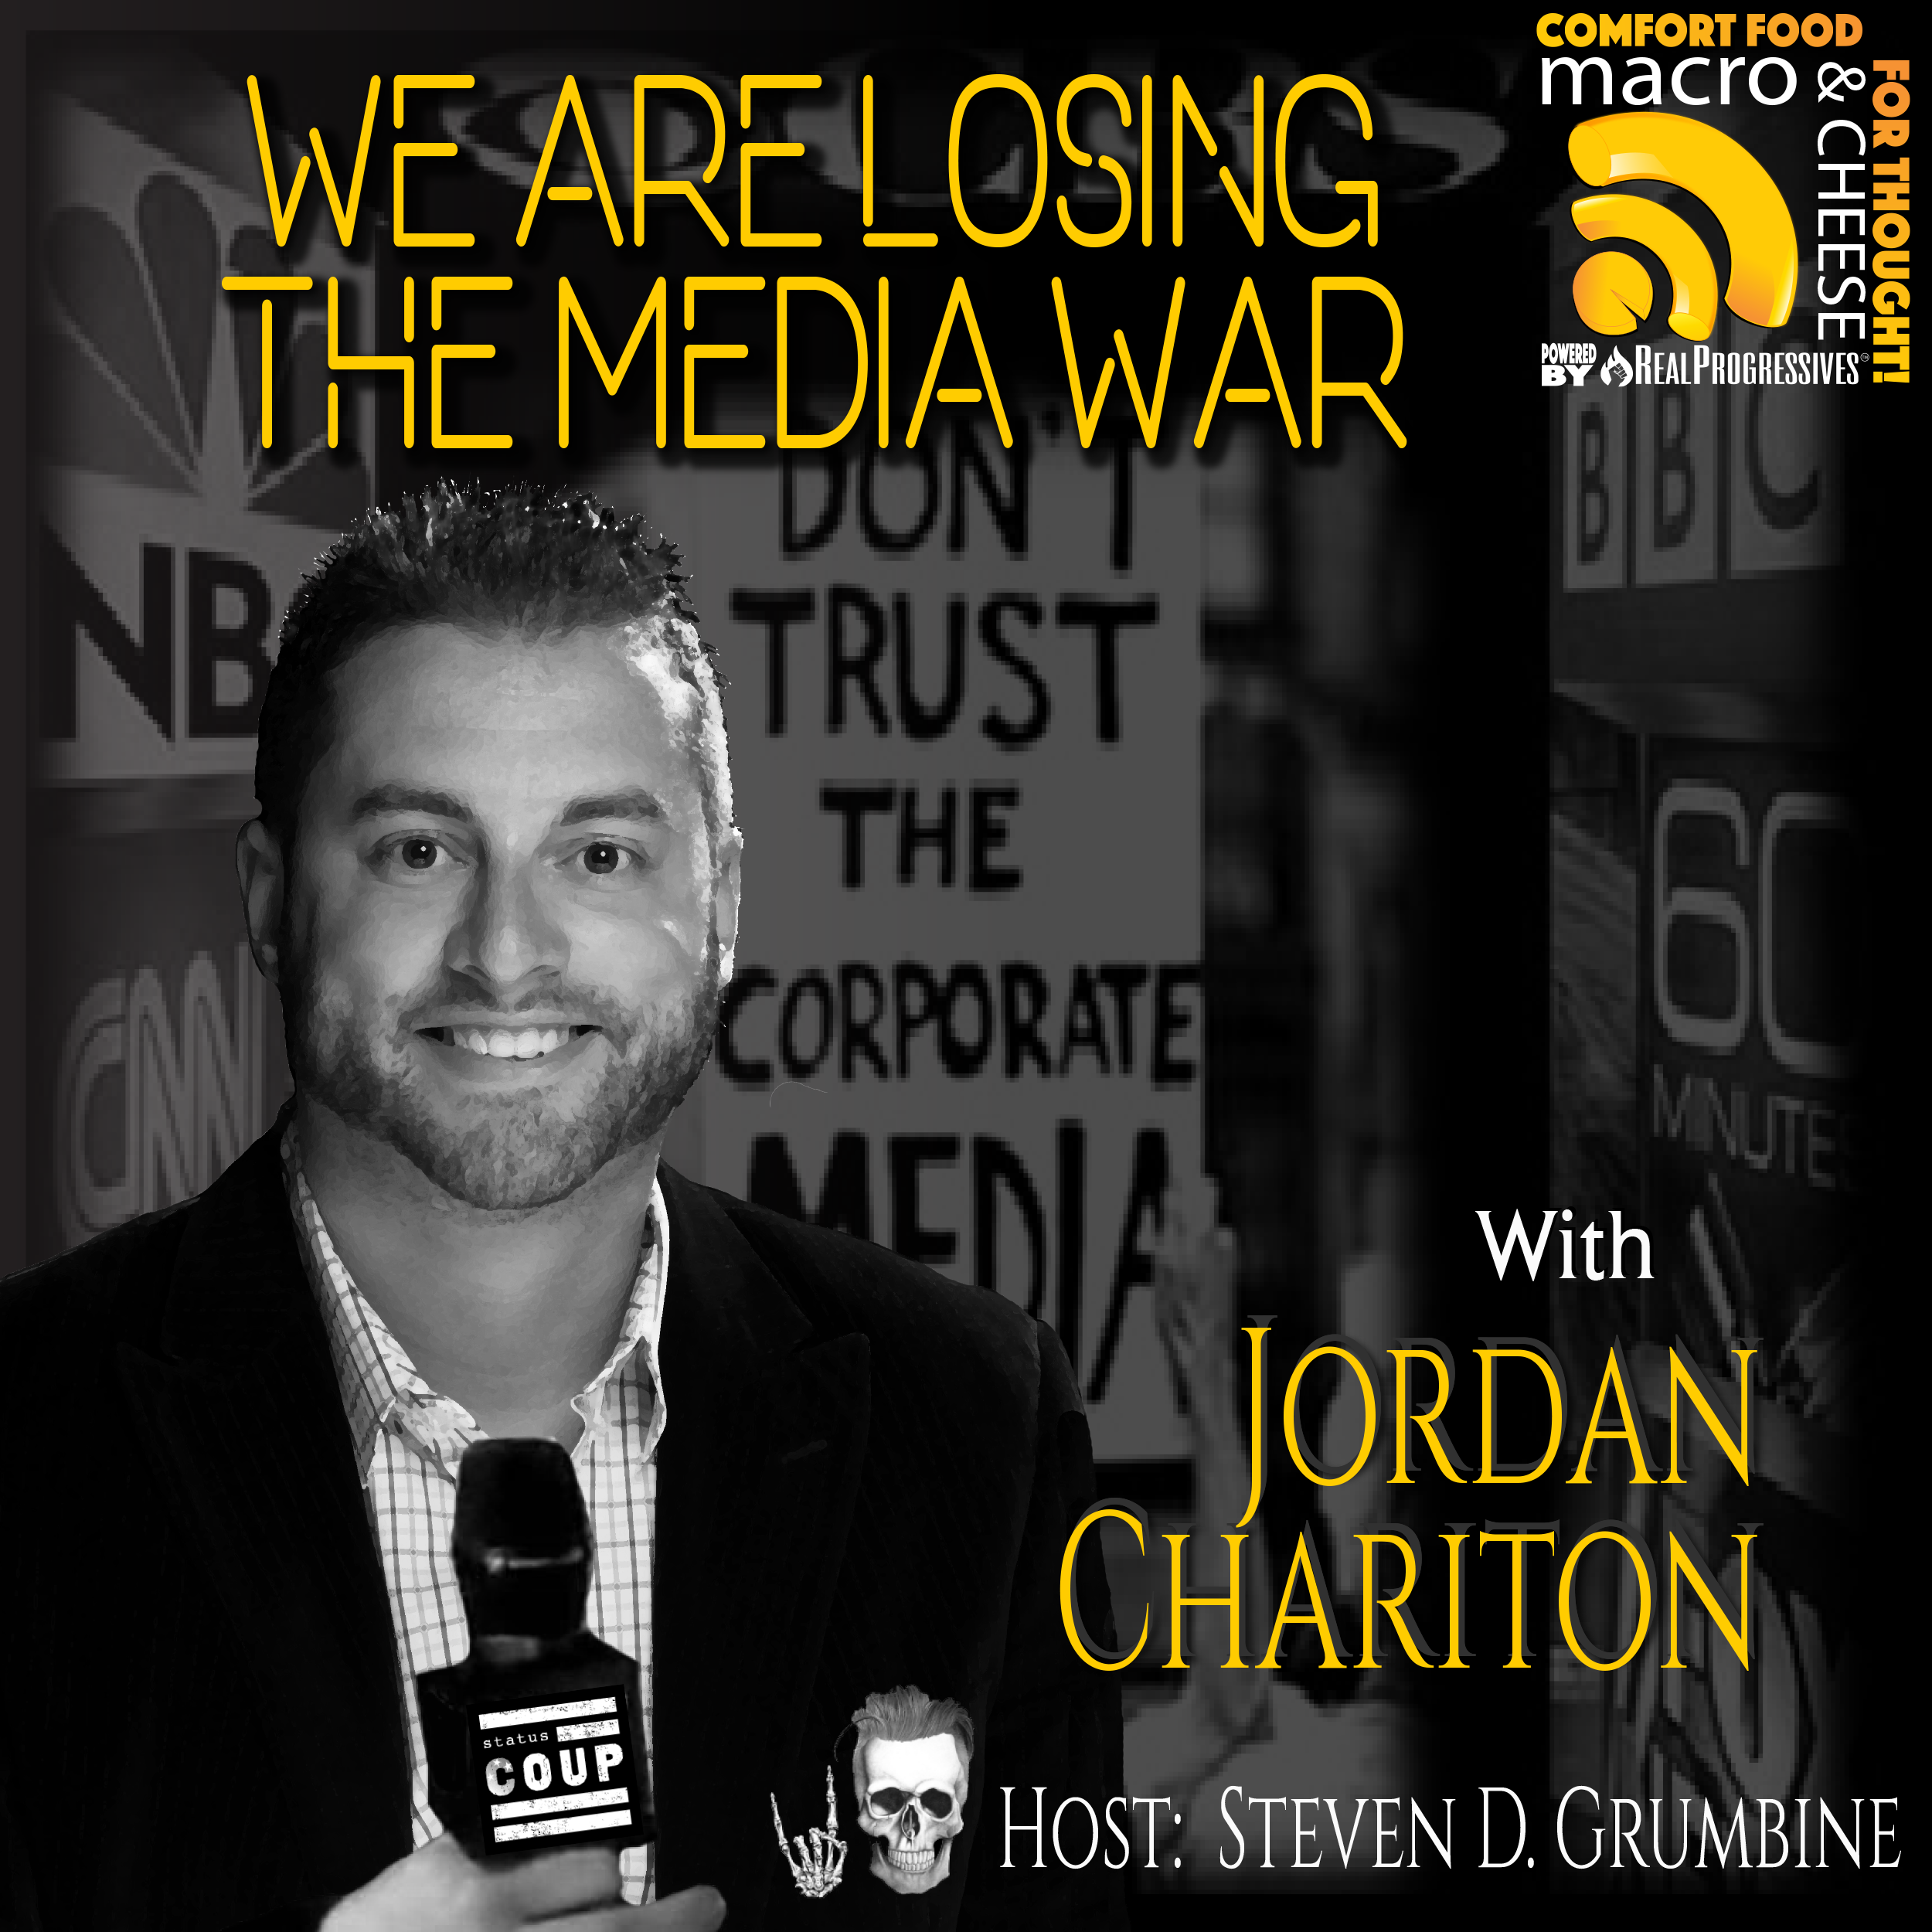 We Are Losing The Media War with Jordan Chariton